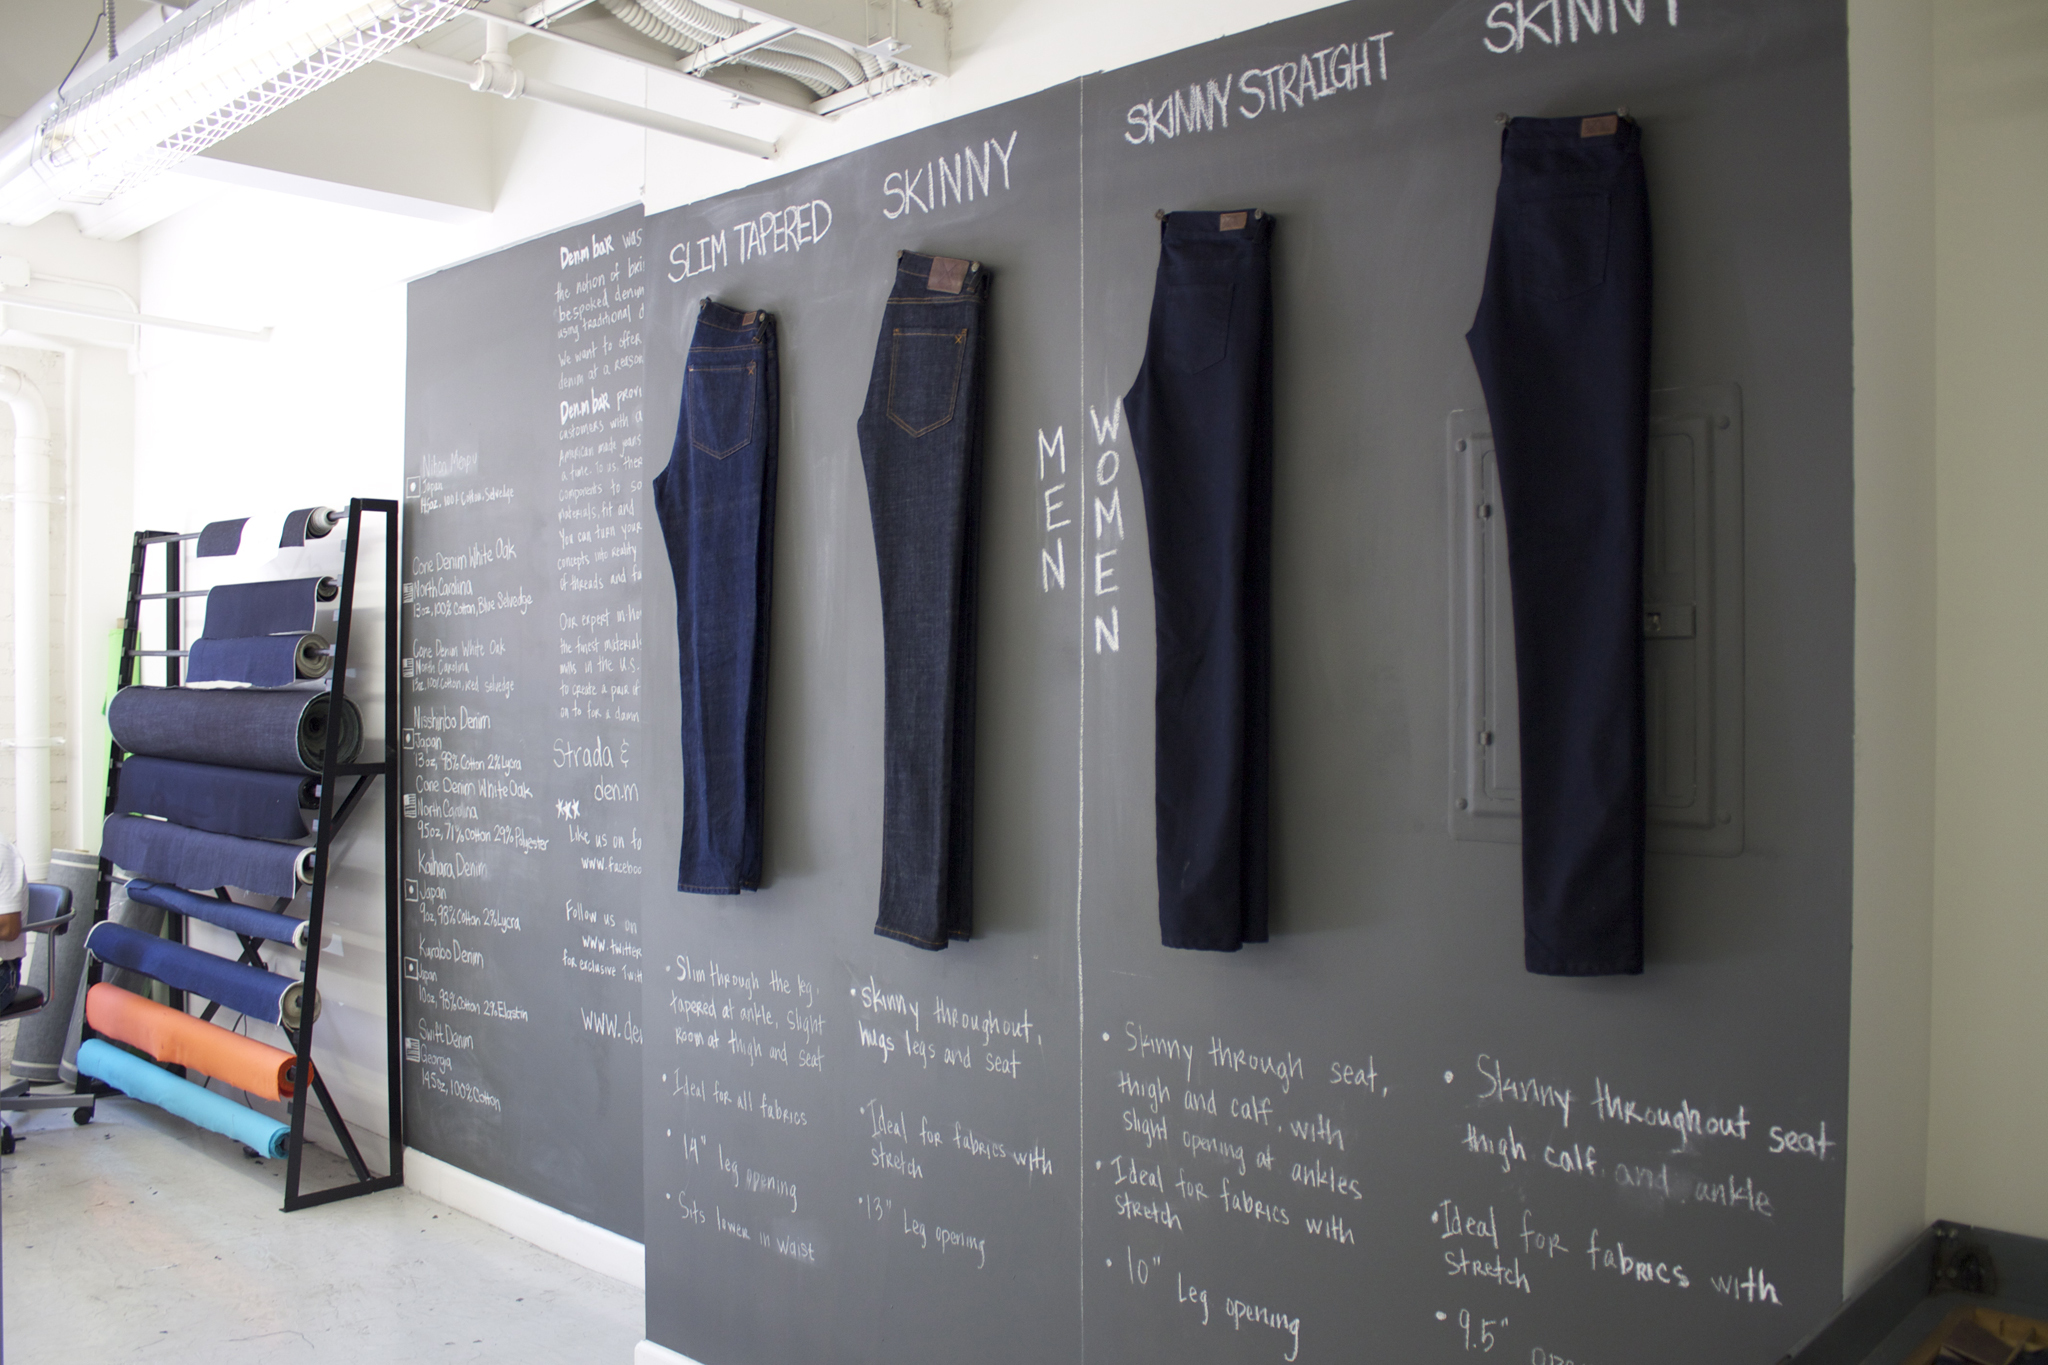 Best denim: Den.m Bar